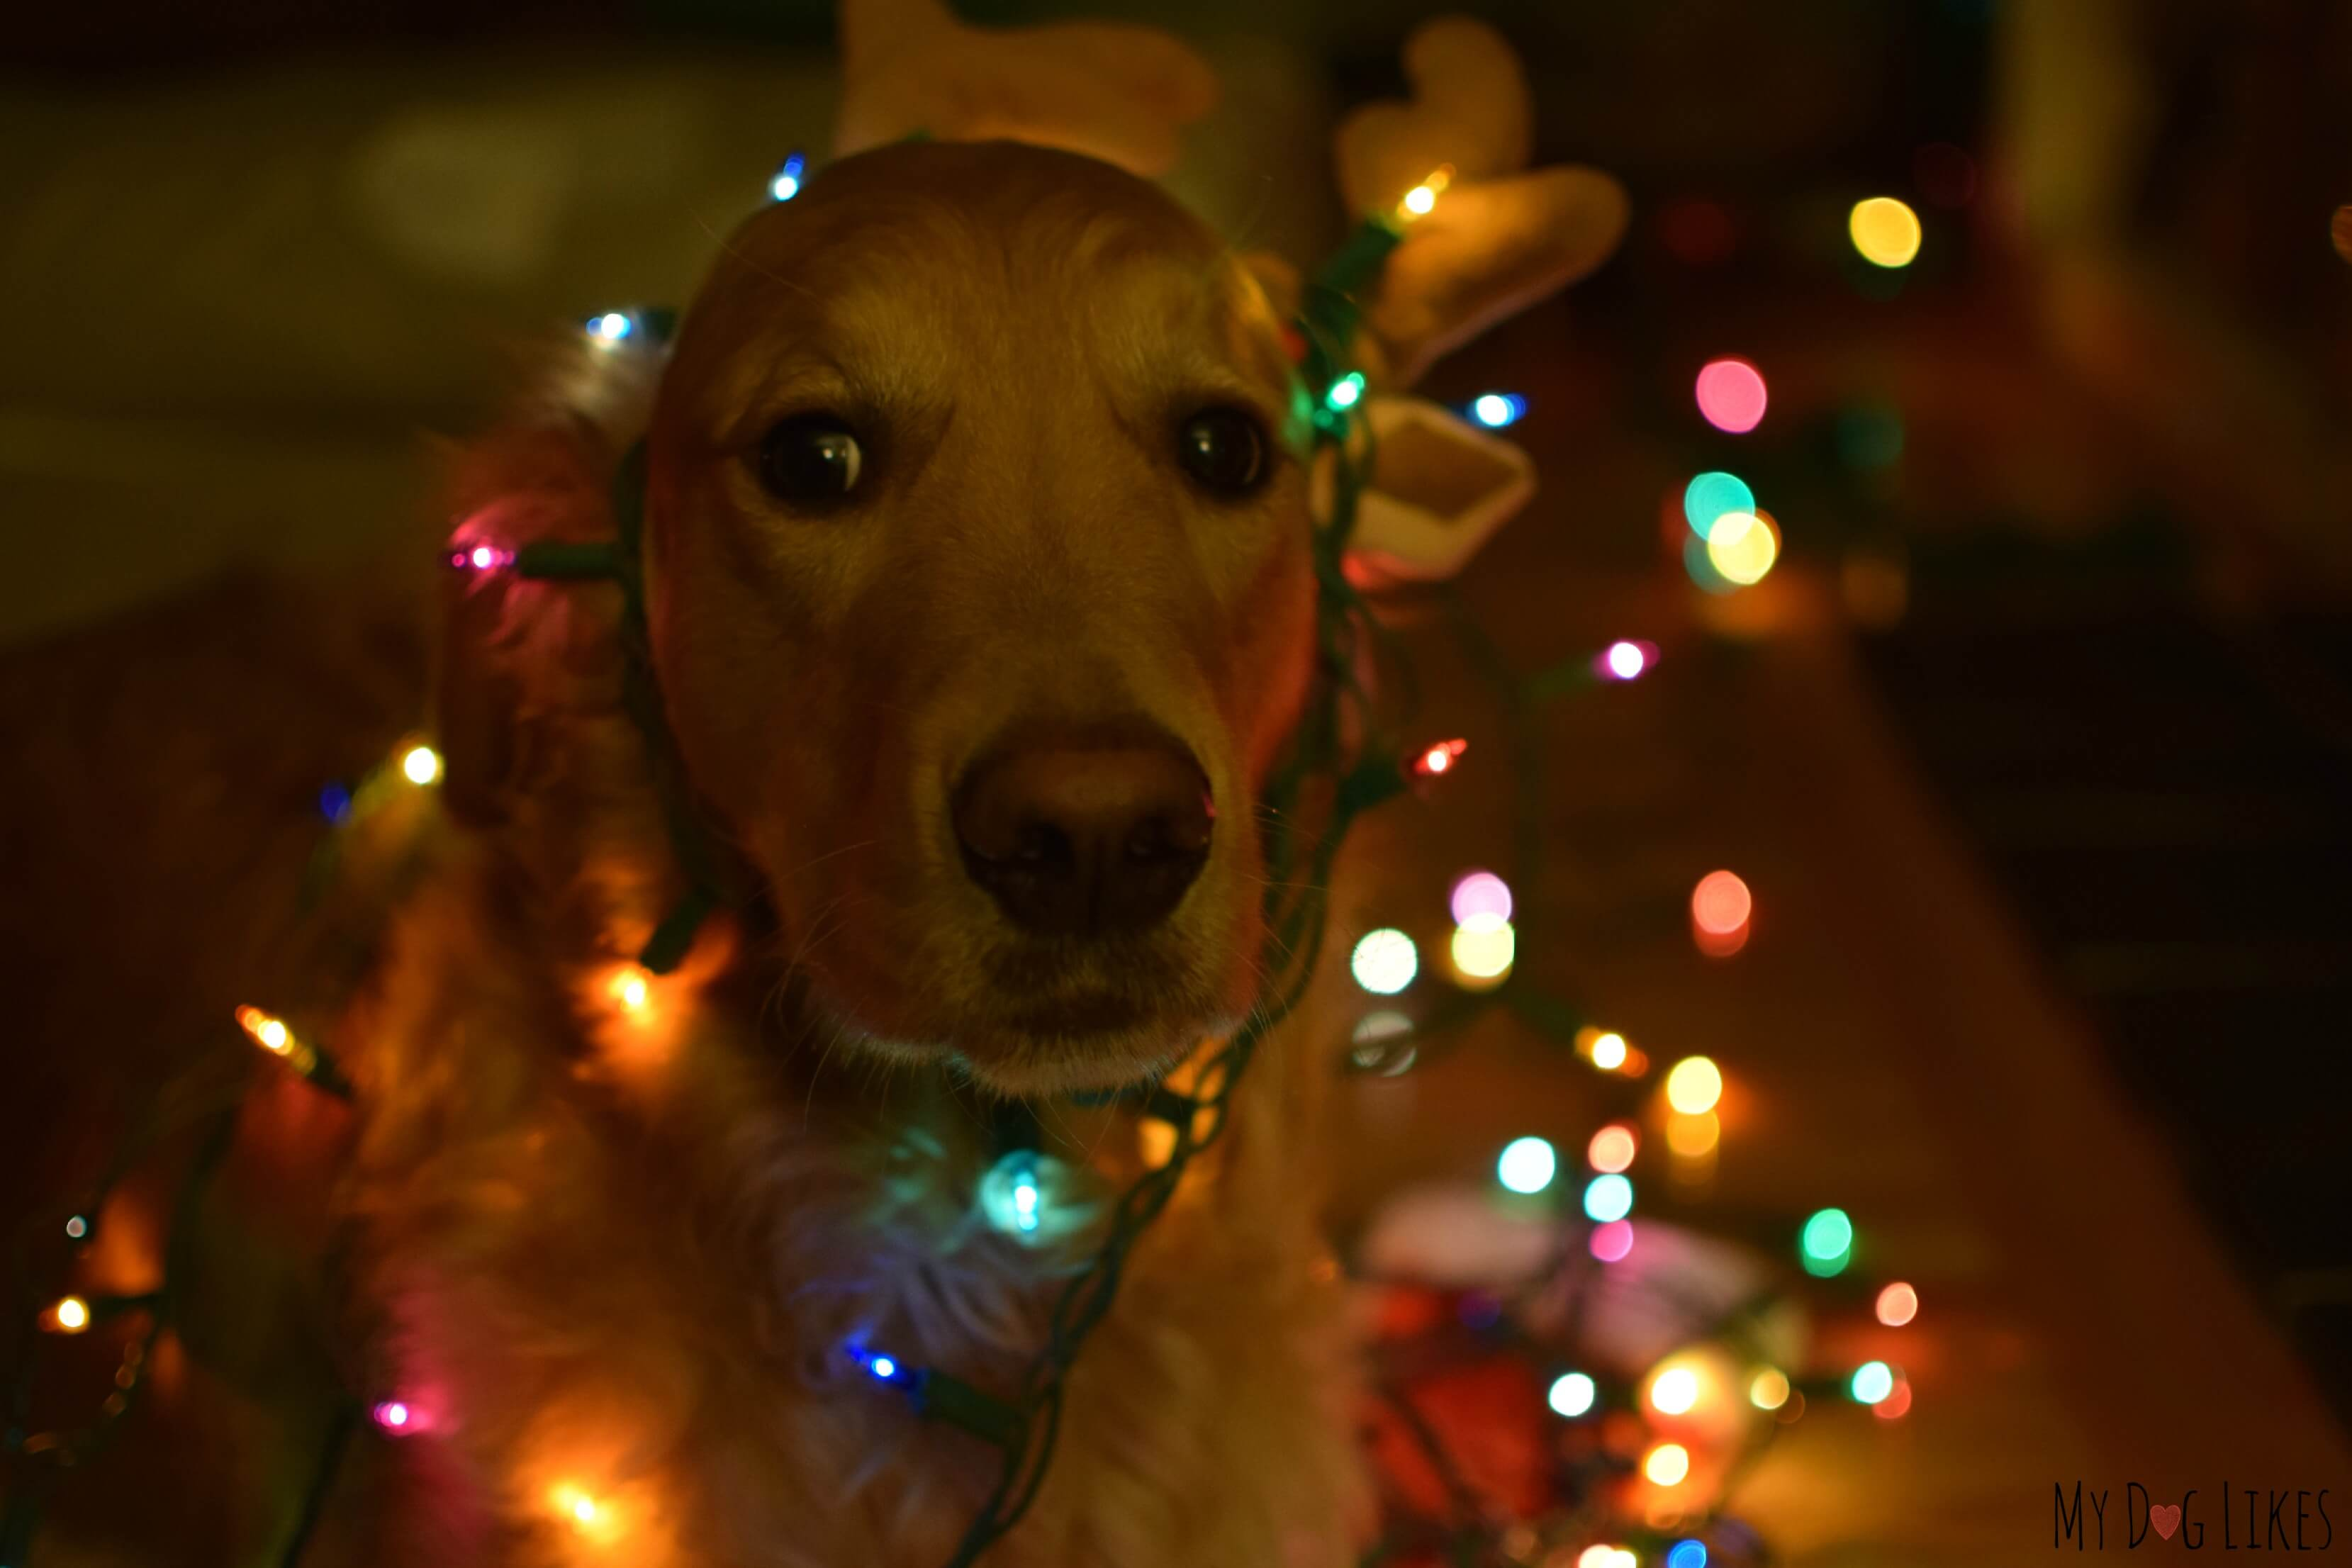 charlie tangled up in christmas lights our golden retriever charlie tangled up in christmas lights - Dog Christmas Lights